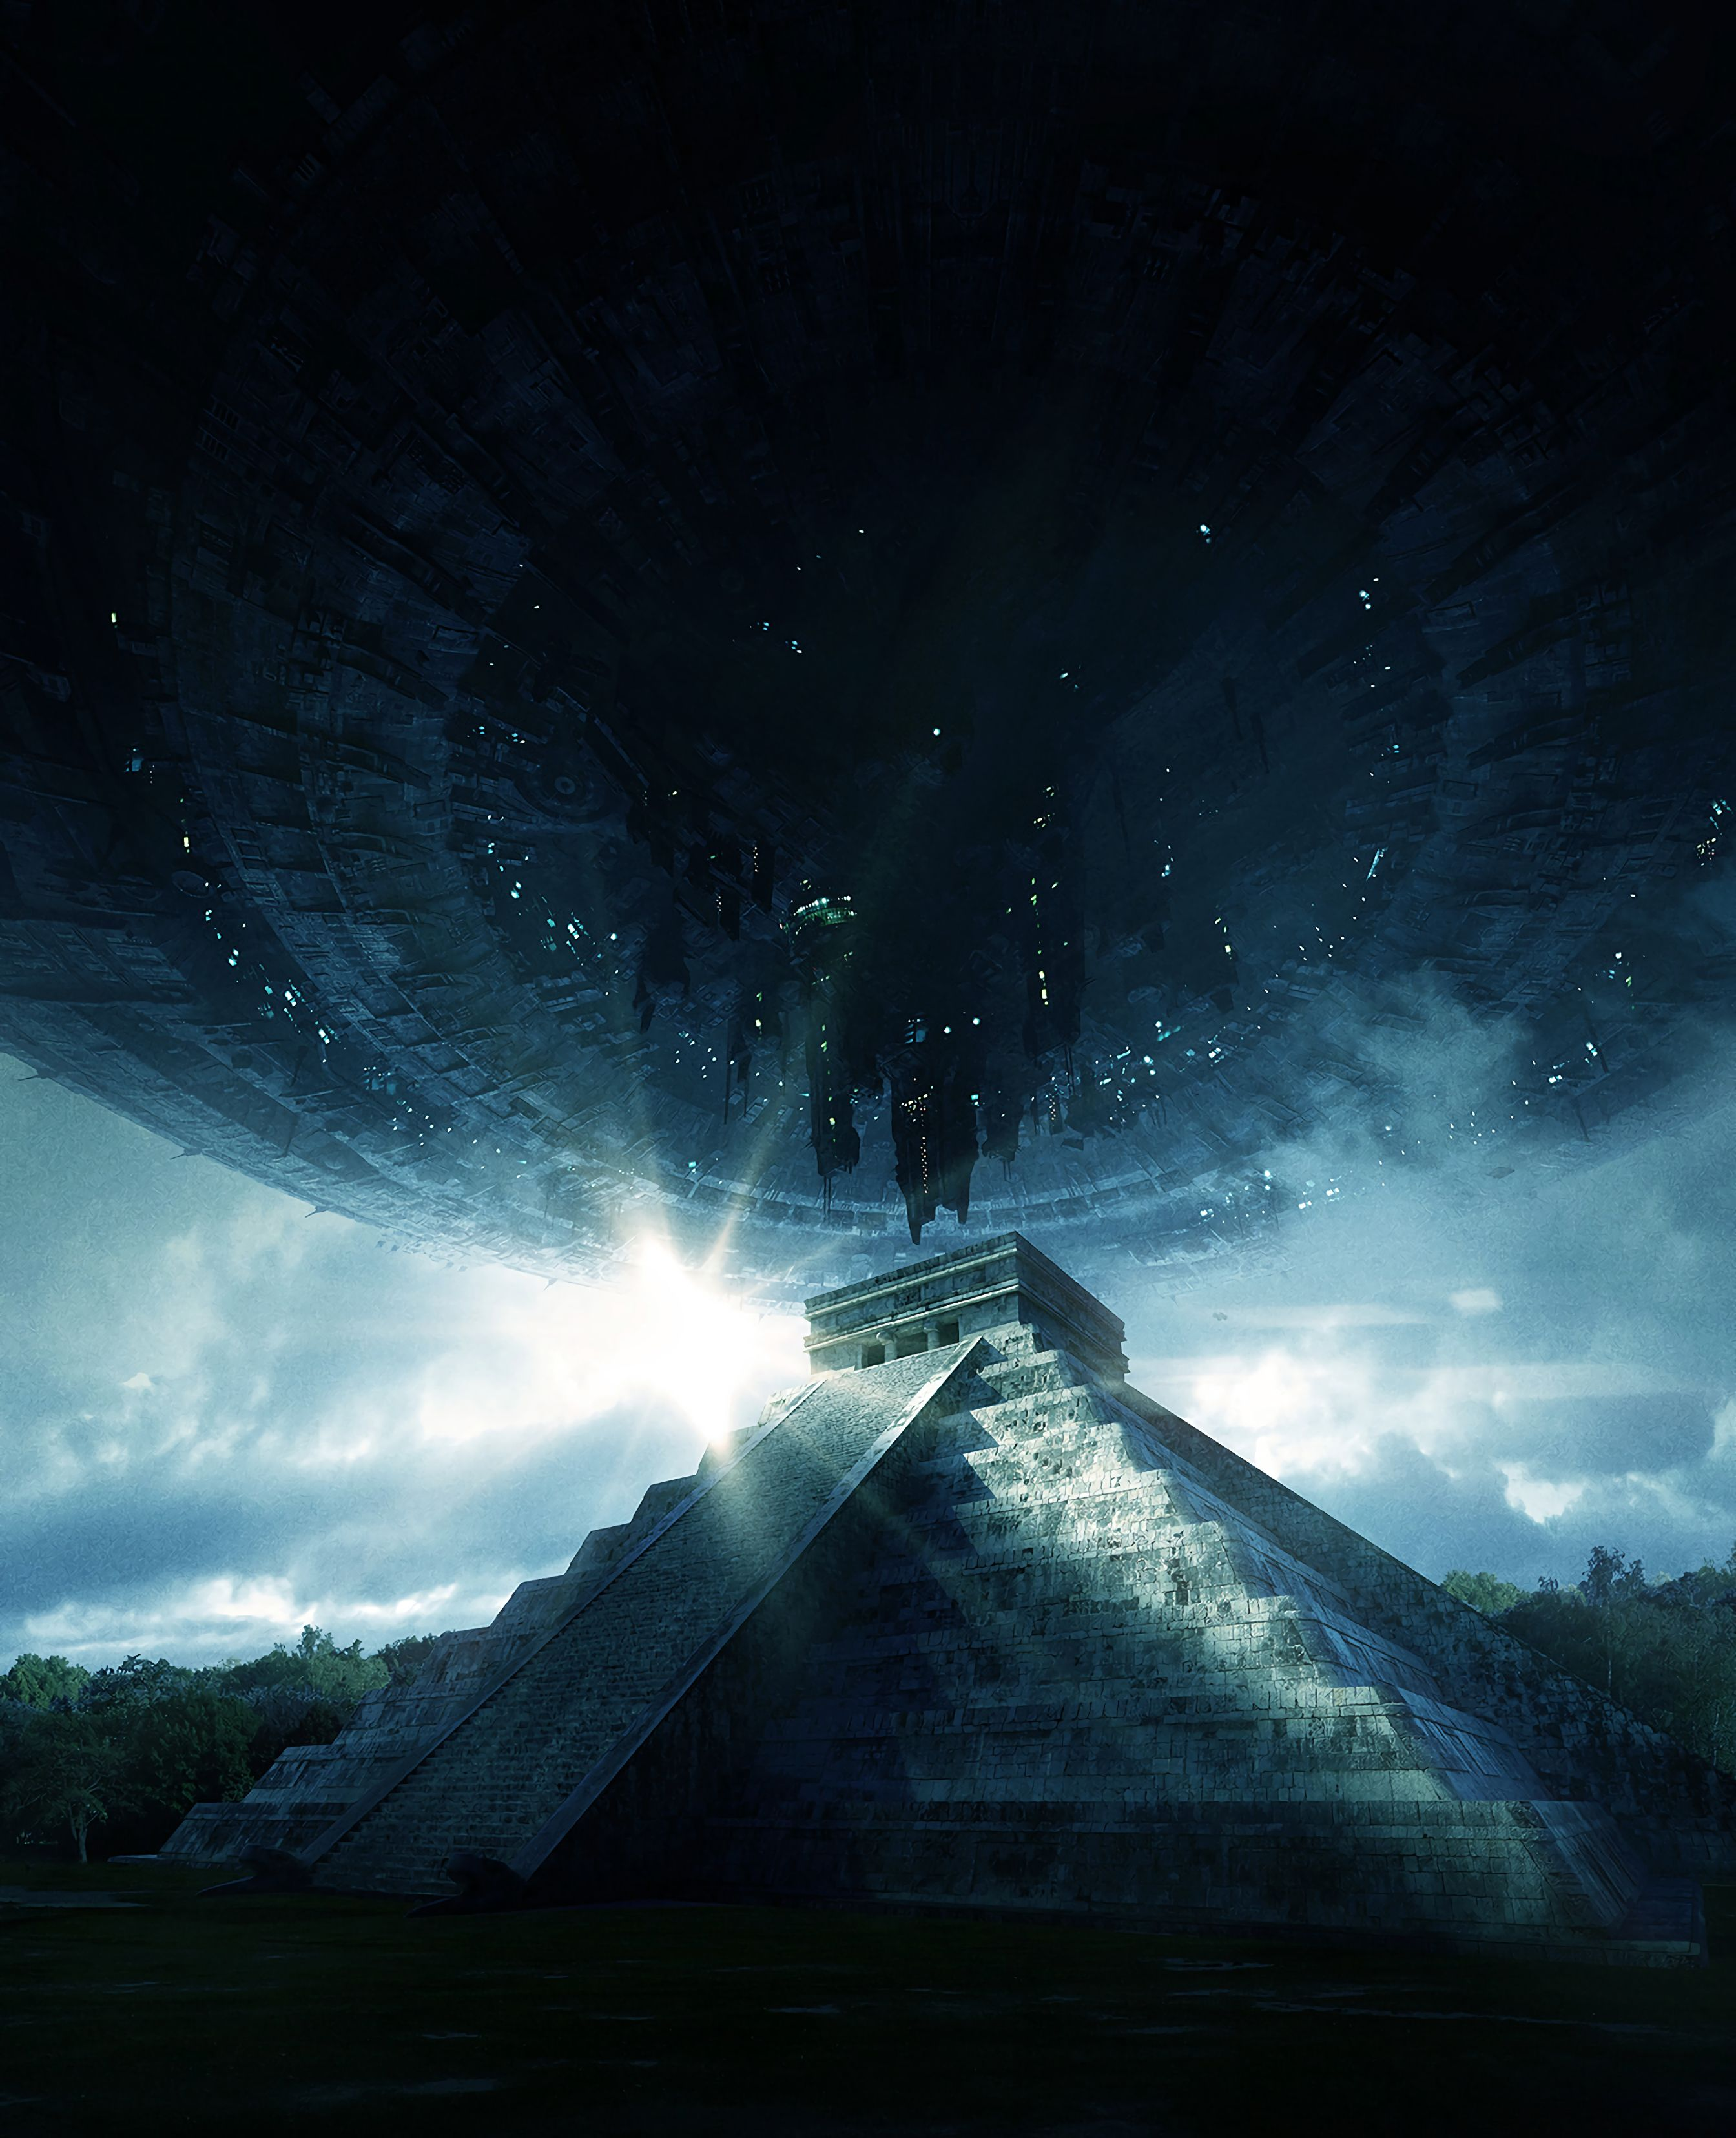 118420 download wallpaper Fantasy, Pyramid, Ufo, Aliens, Visit, Contact, Extraterrestrial, Civilization screensavers and pictures for free